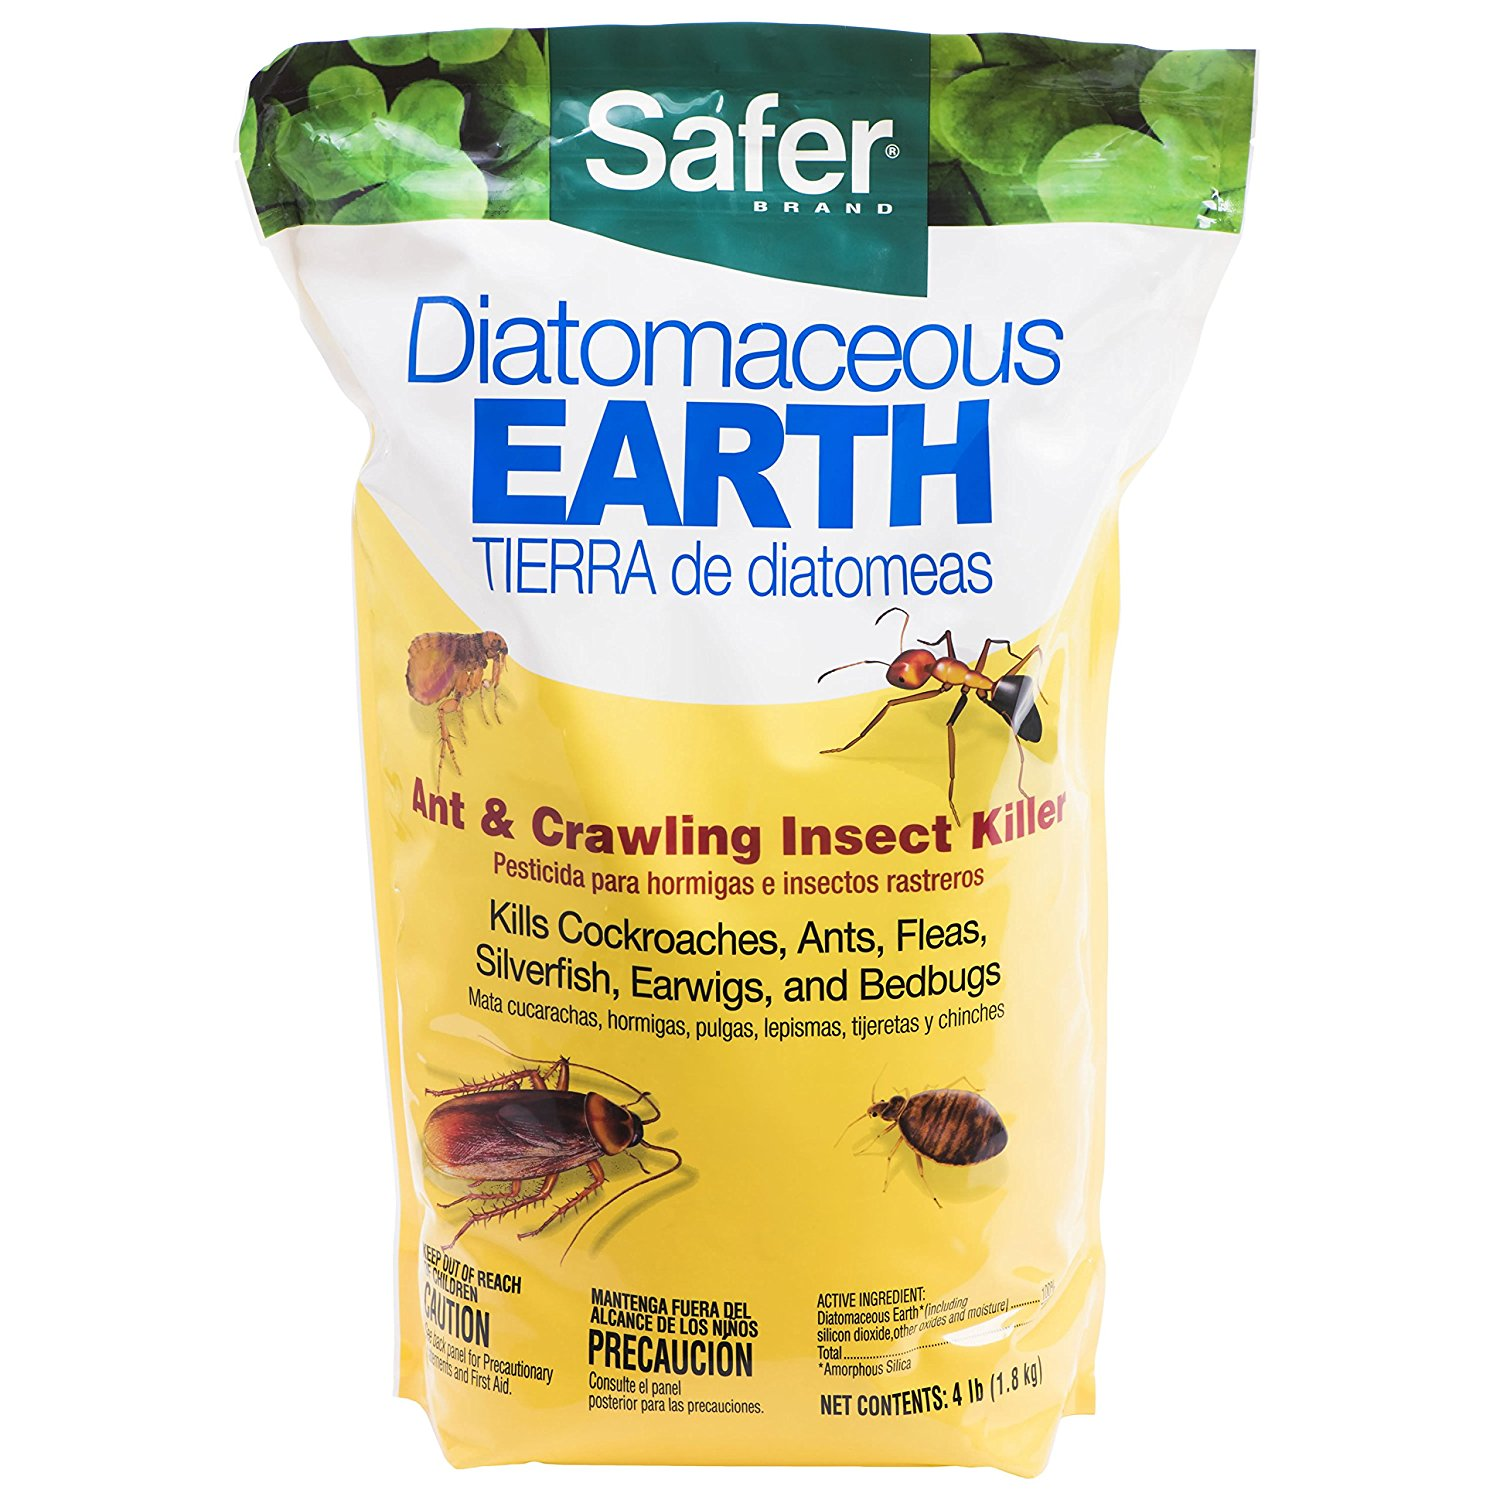 51703 Diatomaceous Earth Bed Bug, Flea and Ant Crawling Insect Killer, 4 lb, Diatomaceous earth-based powder is a highly effective ant killer; 4-pound.., By Safer Brand